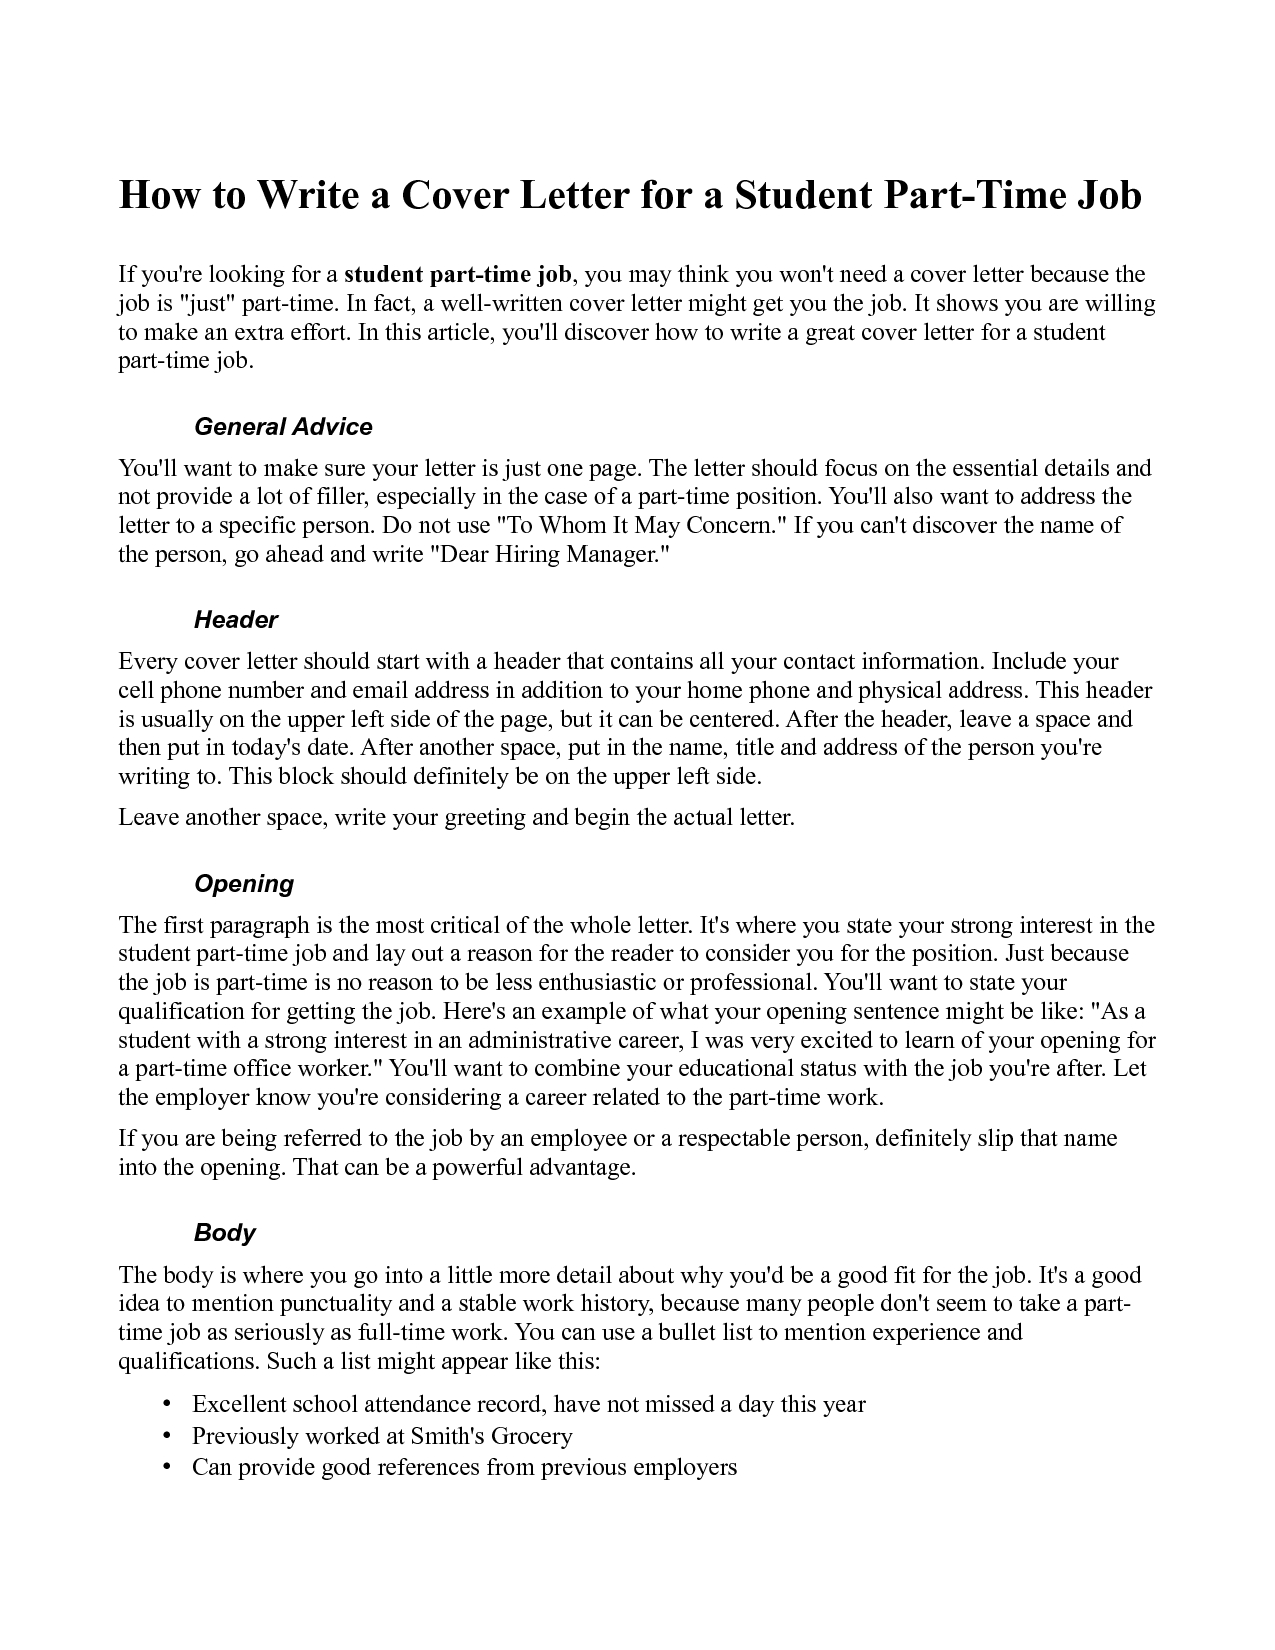 10 Trendy Ideas For Part Time Jobs ideas collection part time cover letter sample cute cover letter 2020